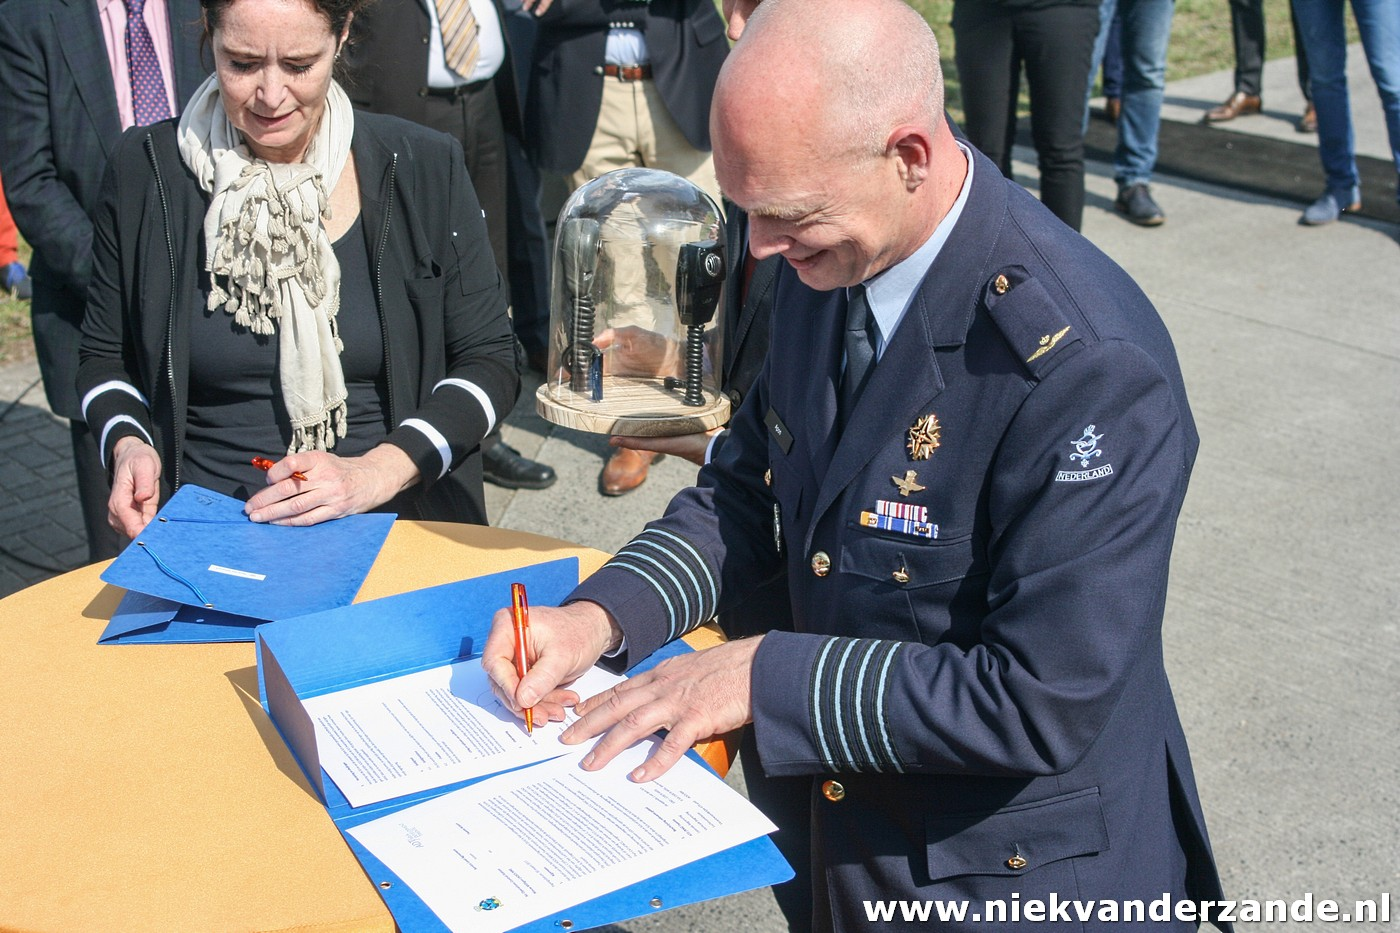 The signing of the handover documents between Colonel APon and airport director de Groot